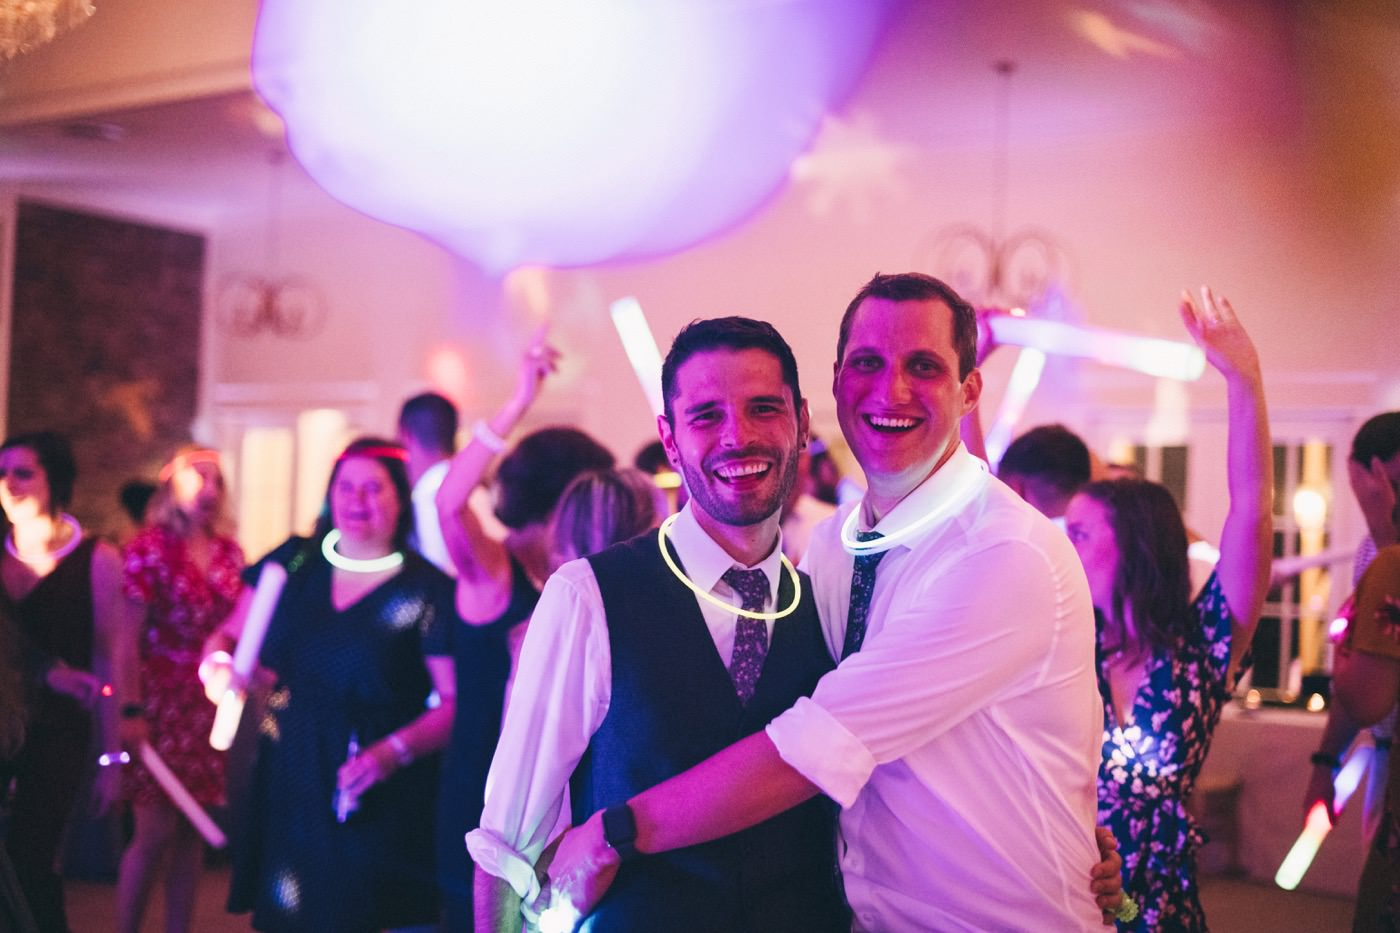 Will-Nate-Louisville-LGBTQ-Pride-Month-Kentucky-Wedding-By-Sarah-Katherine-Davis-Photograpy0086.JPG